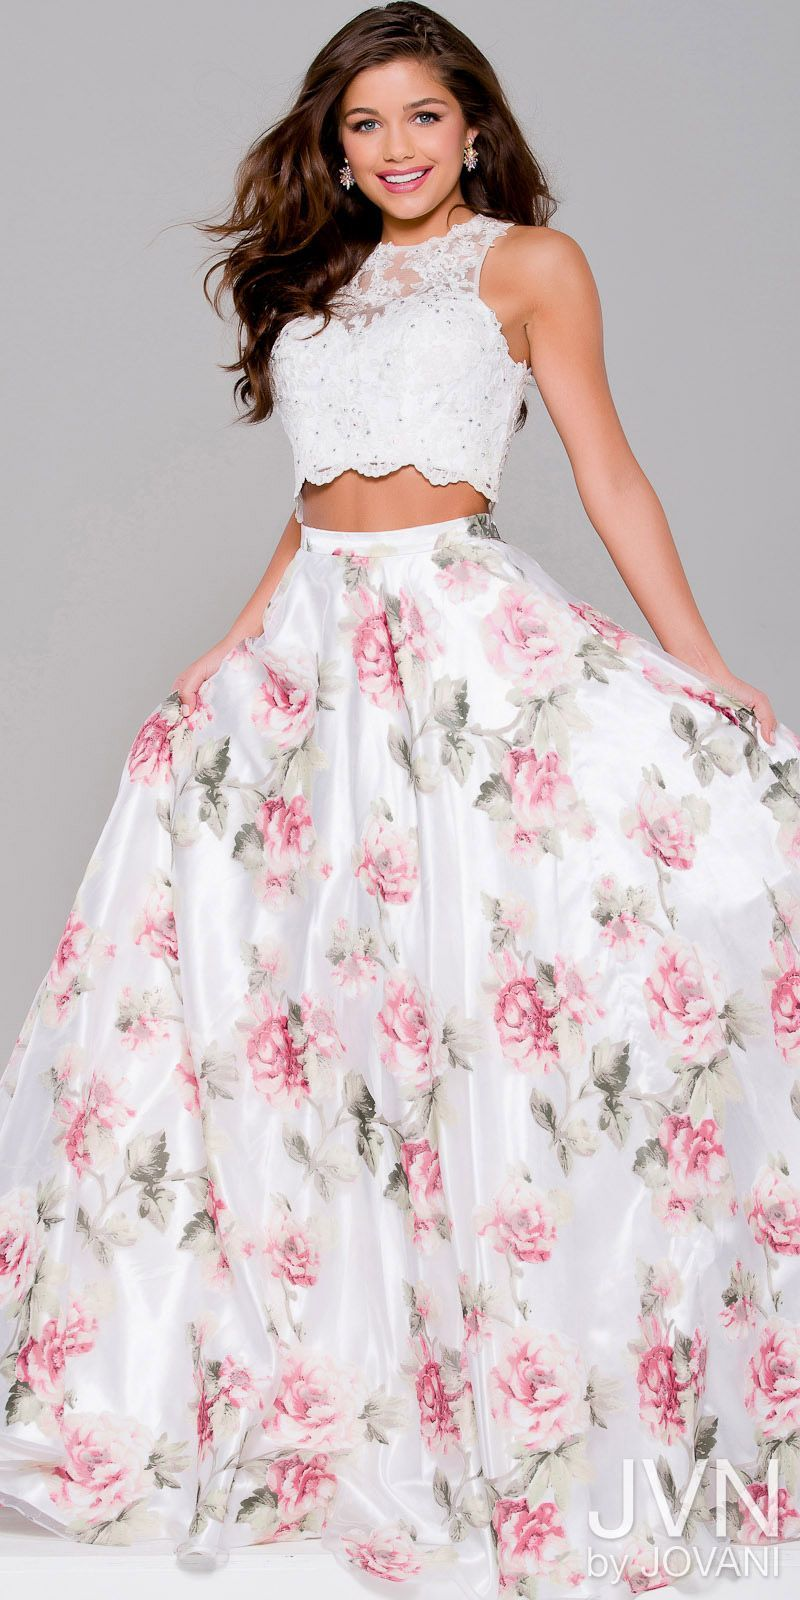 8a7fba667 Floral Lace and Organza Two Piece Prom Dress from JVN by Jovani #edressme